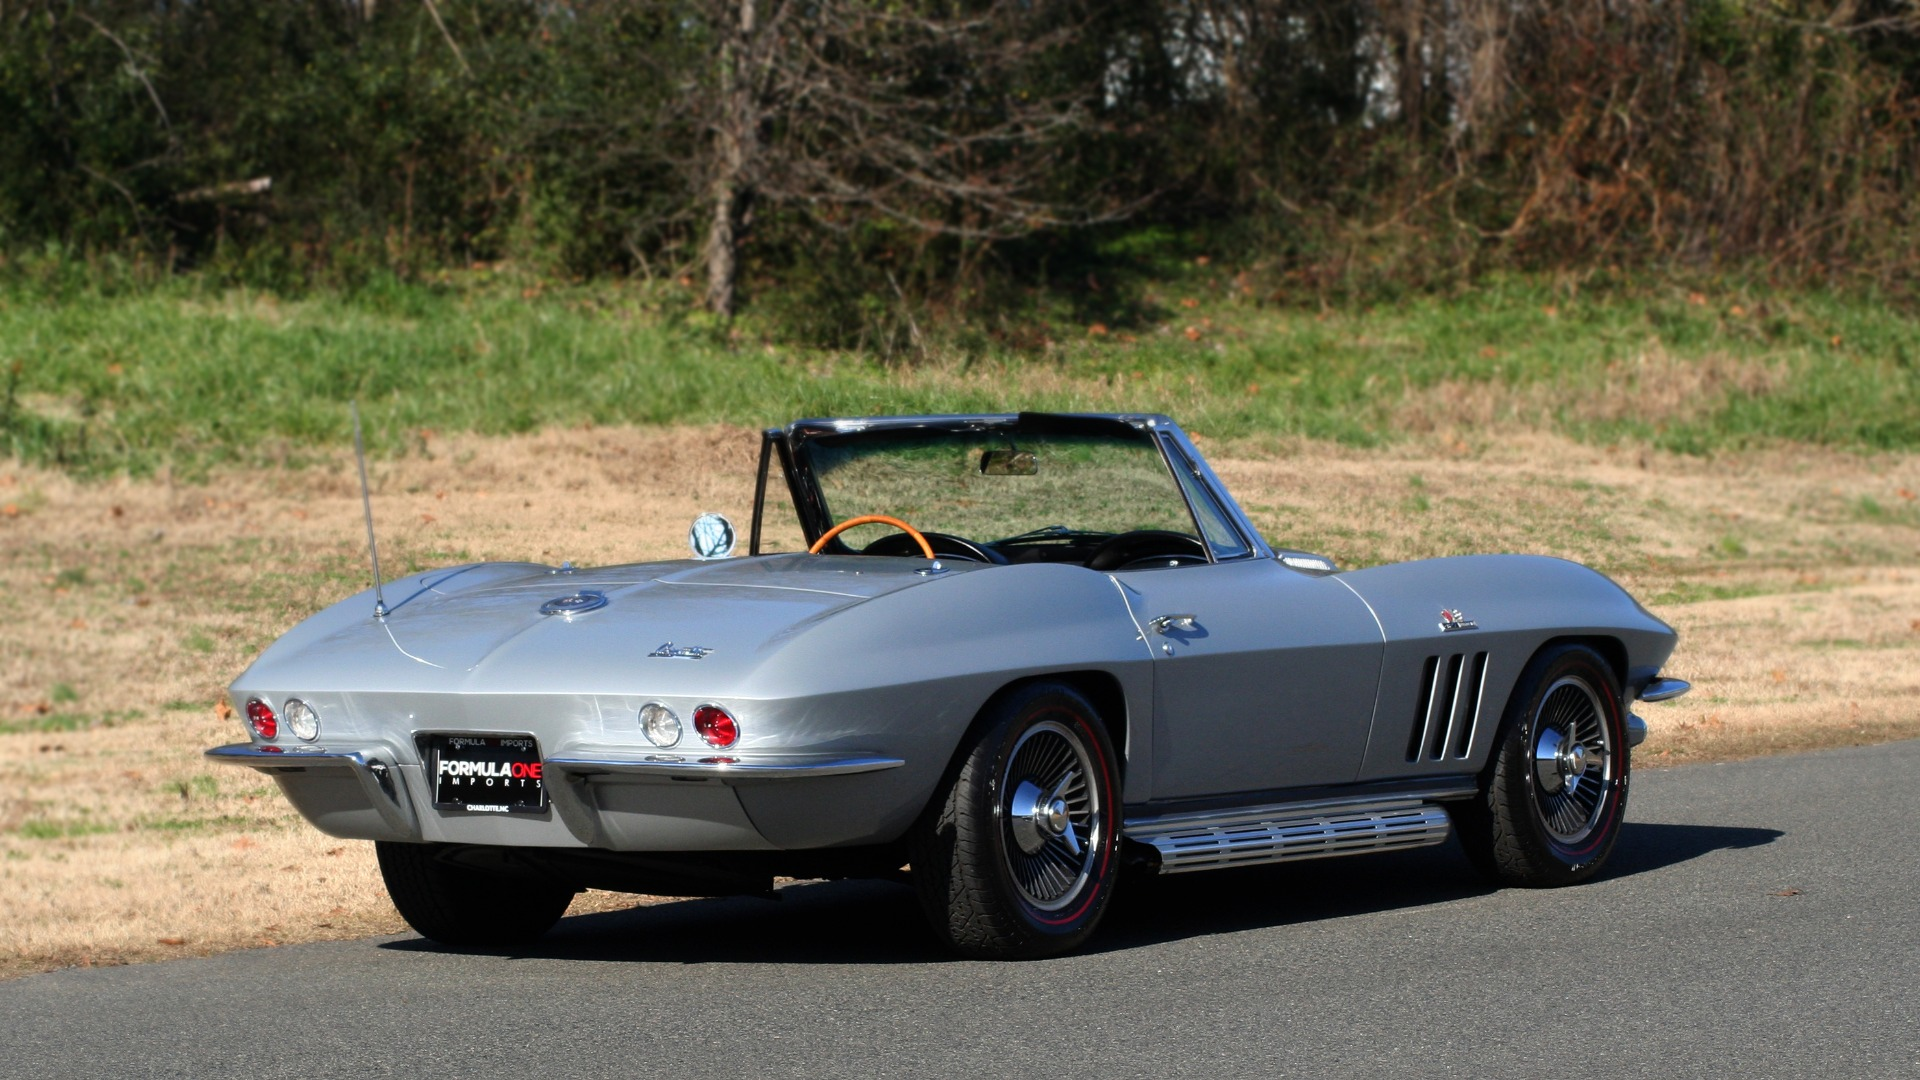 Used 1966 Chevrolet CORVETTE STINGRAY CONVERTIBLE 427 / 4-SPD / NUMBER MATCHING for sale Sold at Formula Imports in Charlotte NC 28227 9